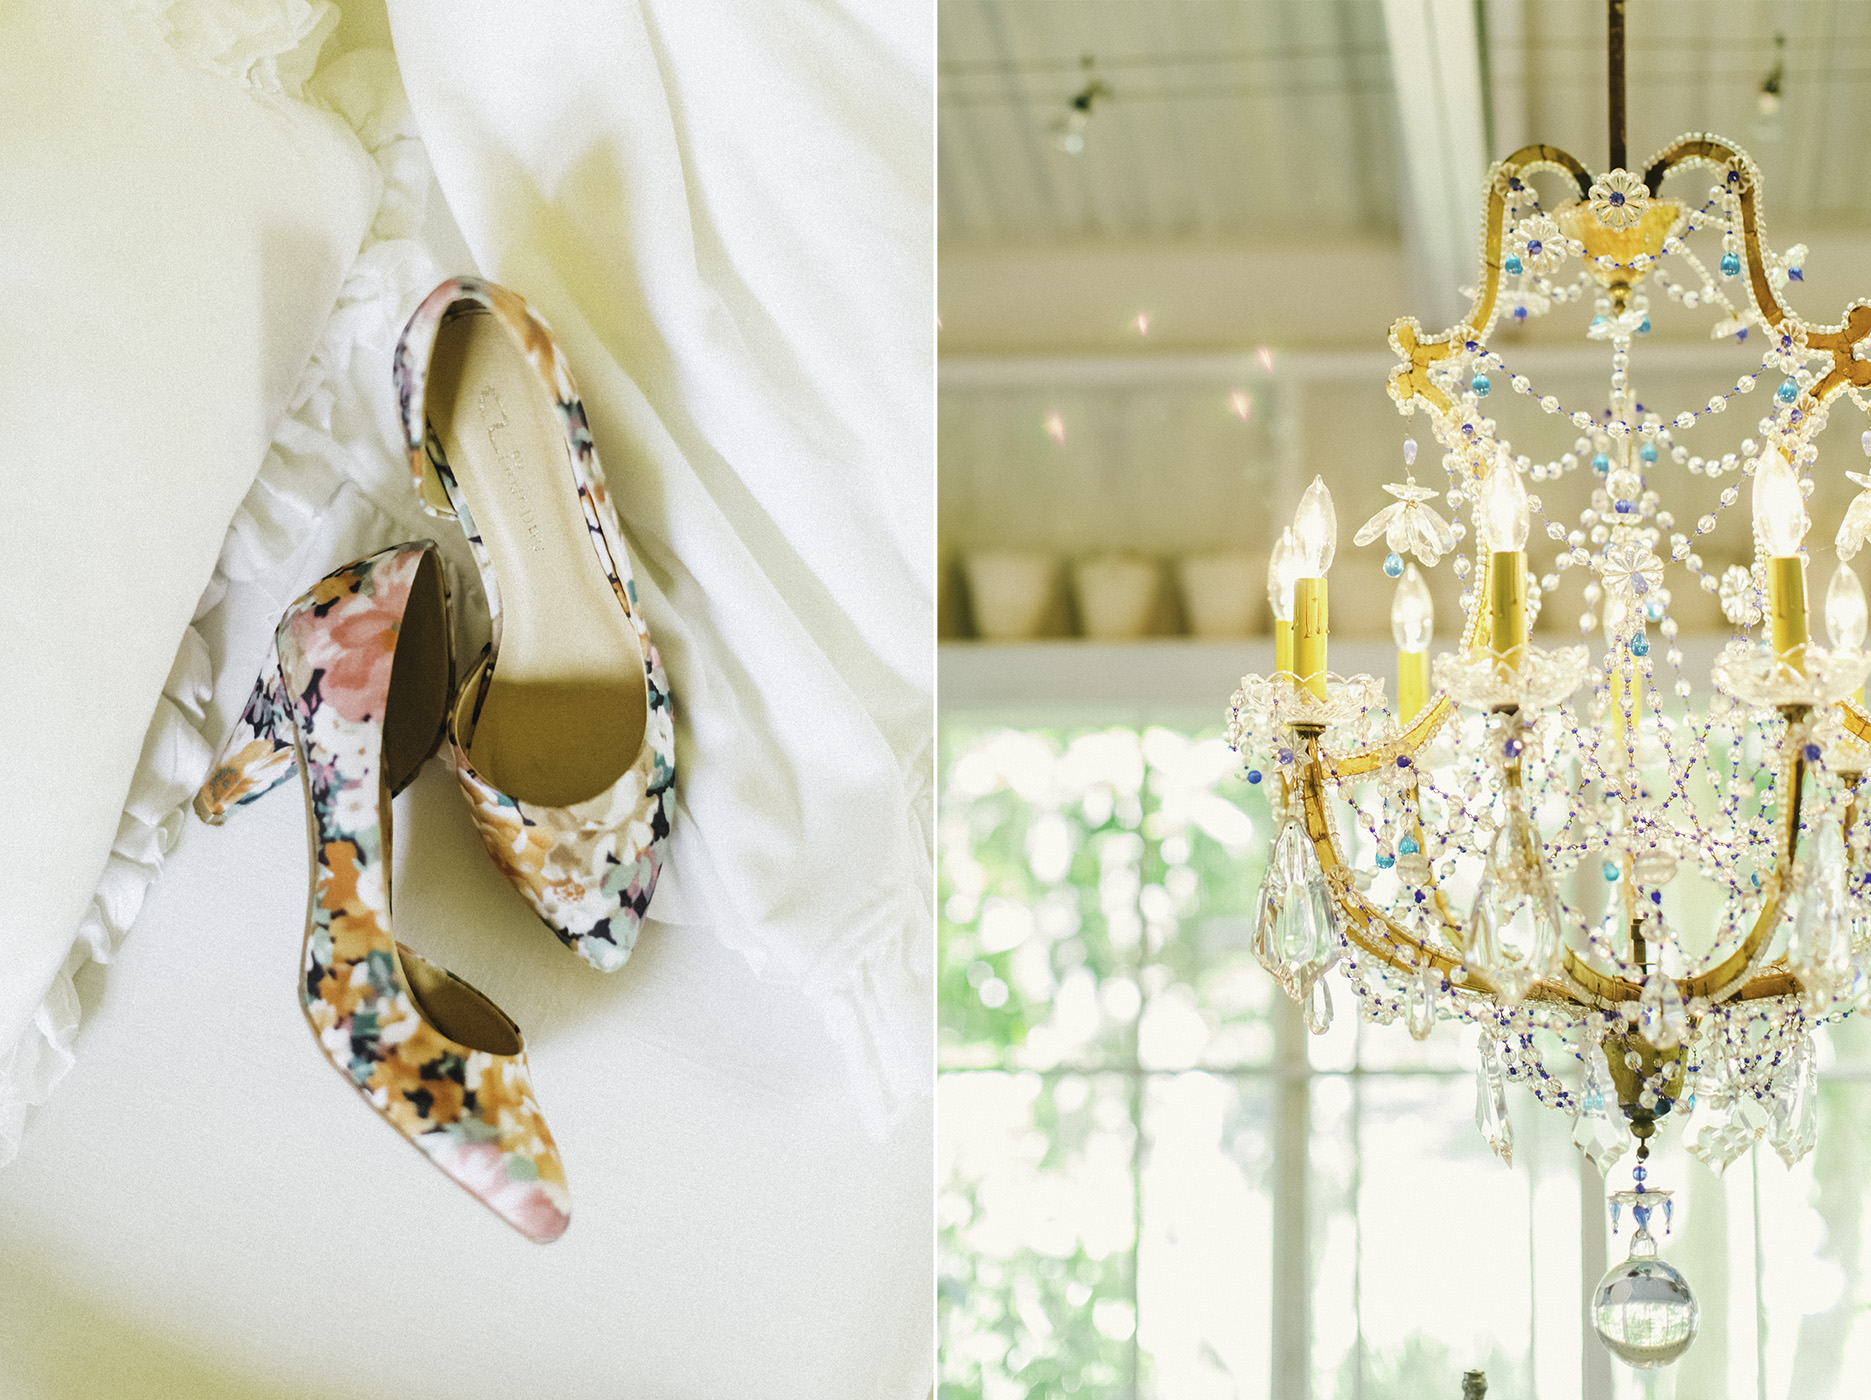 exquisite little details shoes and chandelier